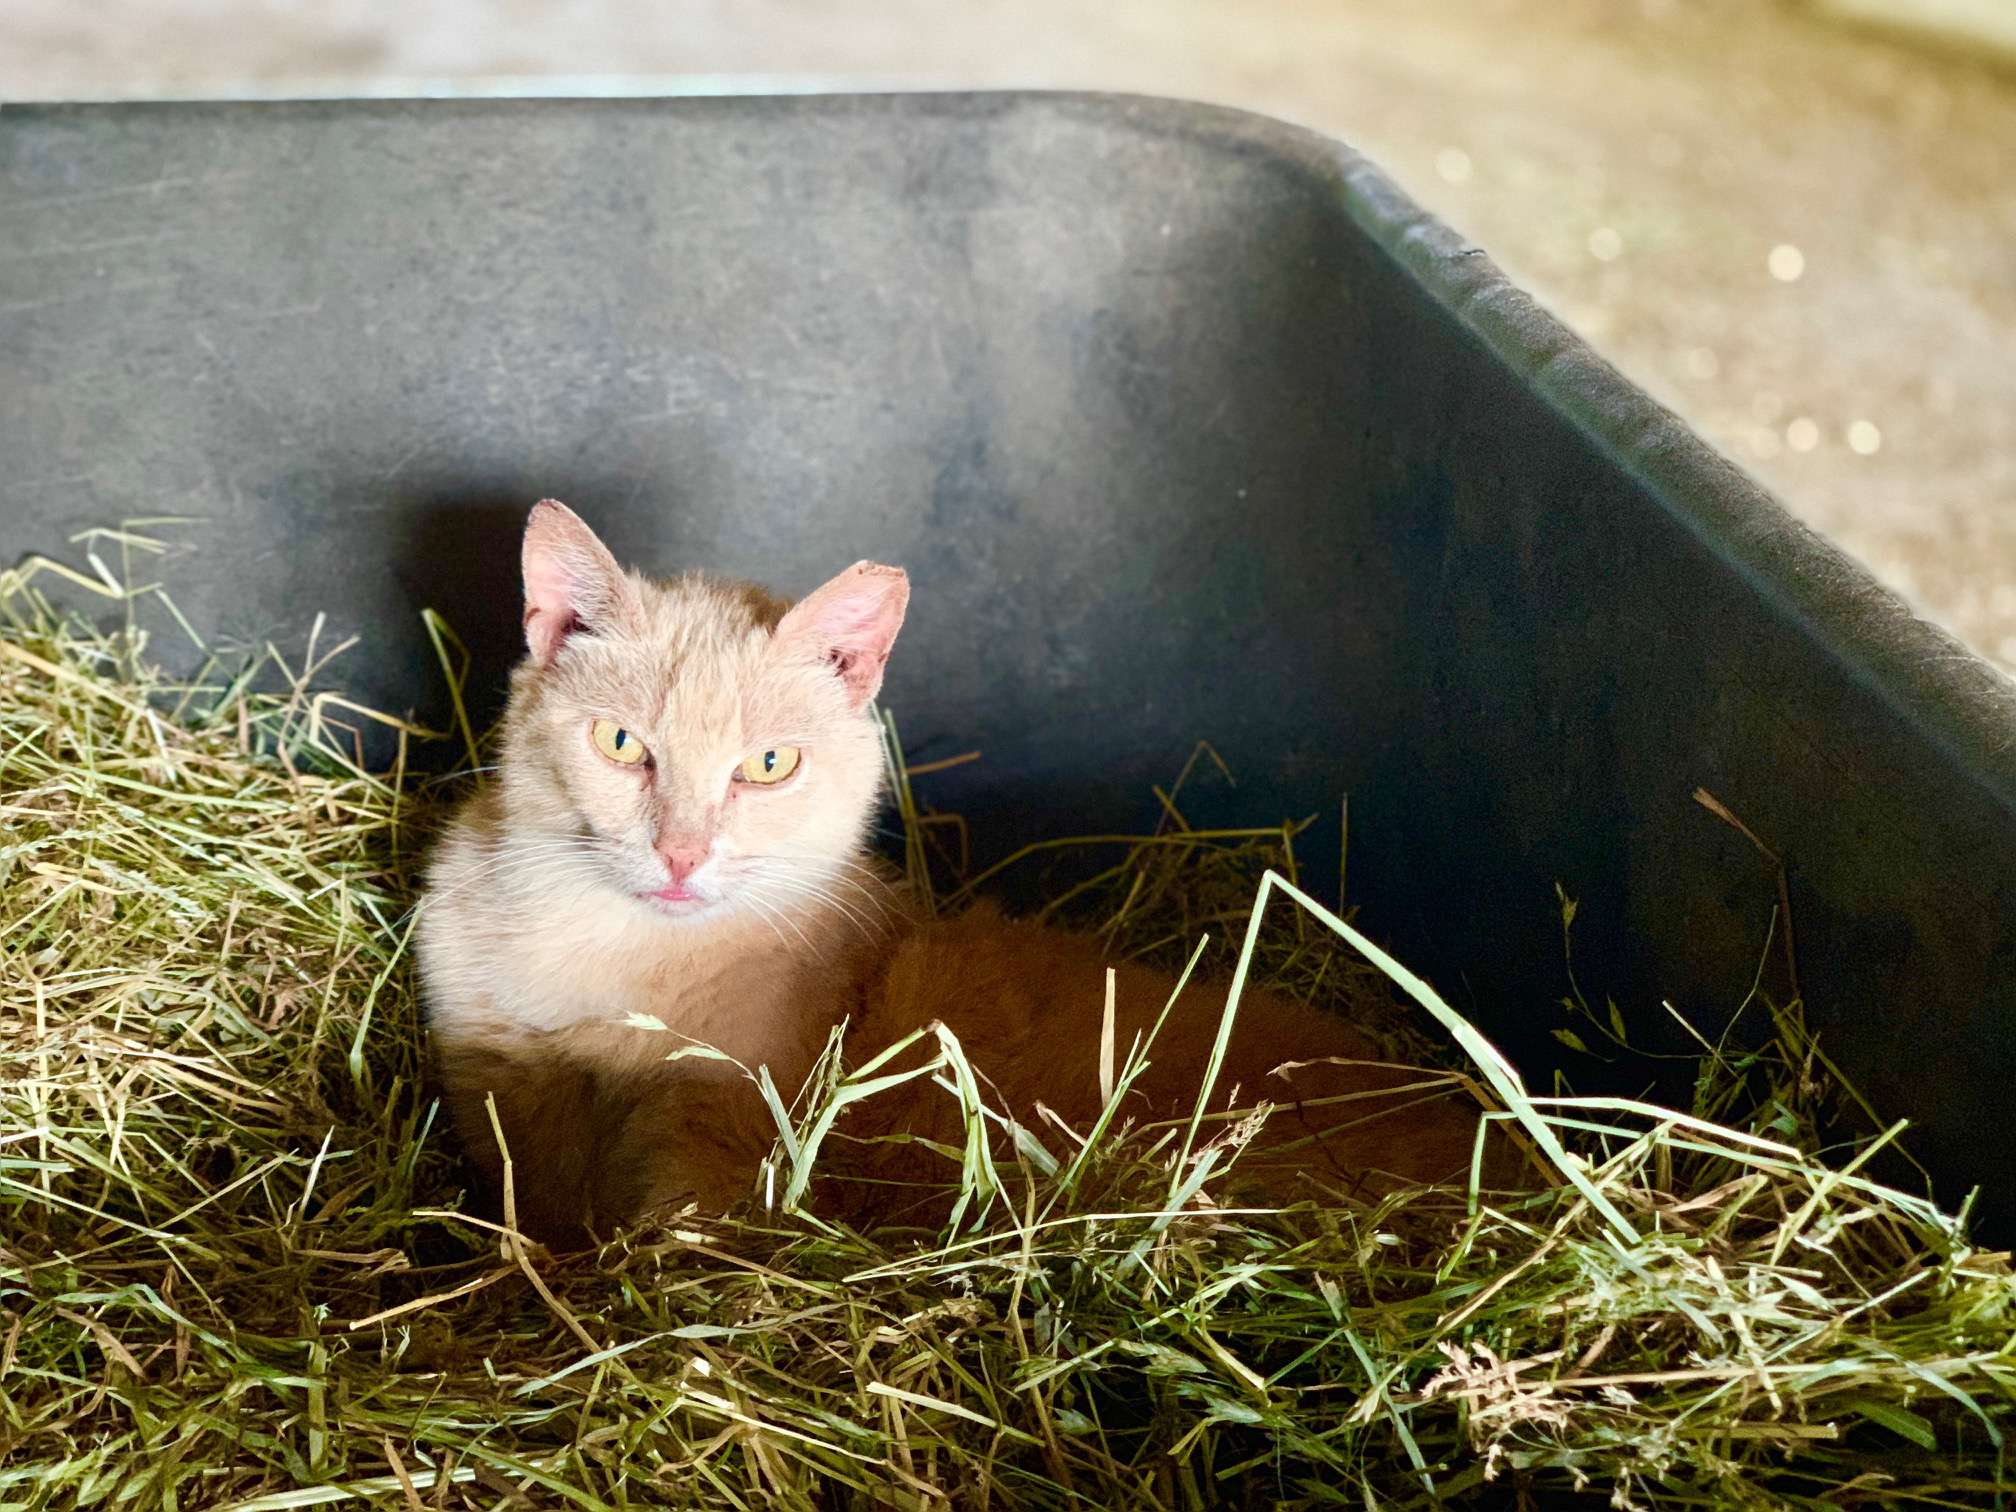 McLaren, one of our sanctuary cats, finds a comfy spot in a pile of hay.